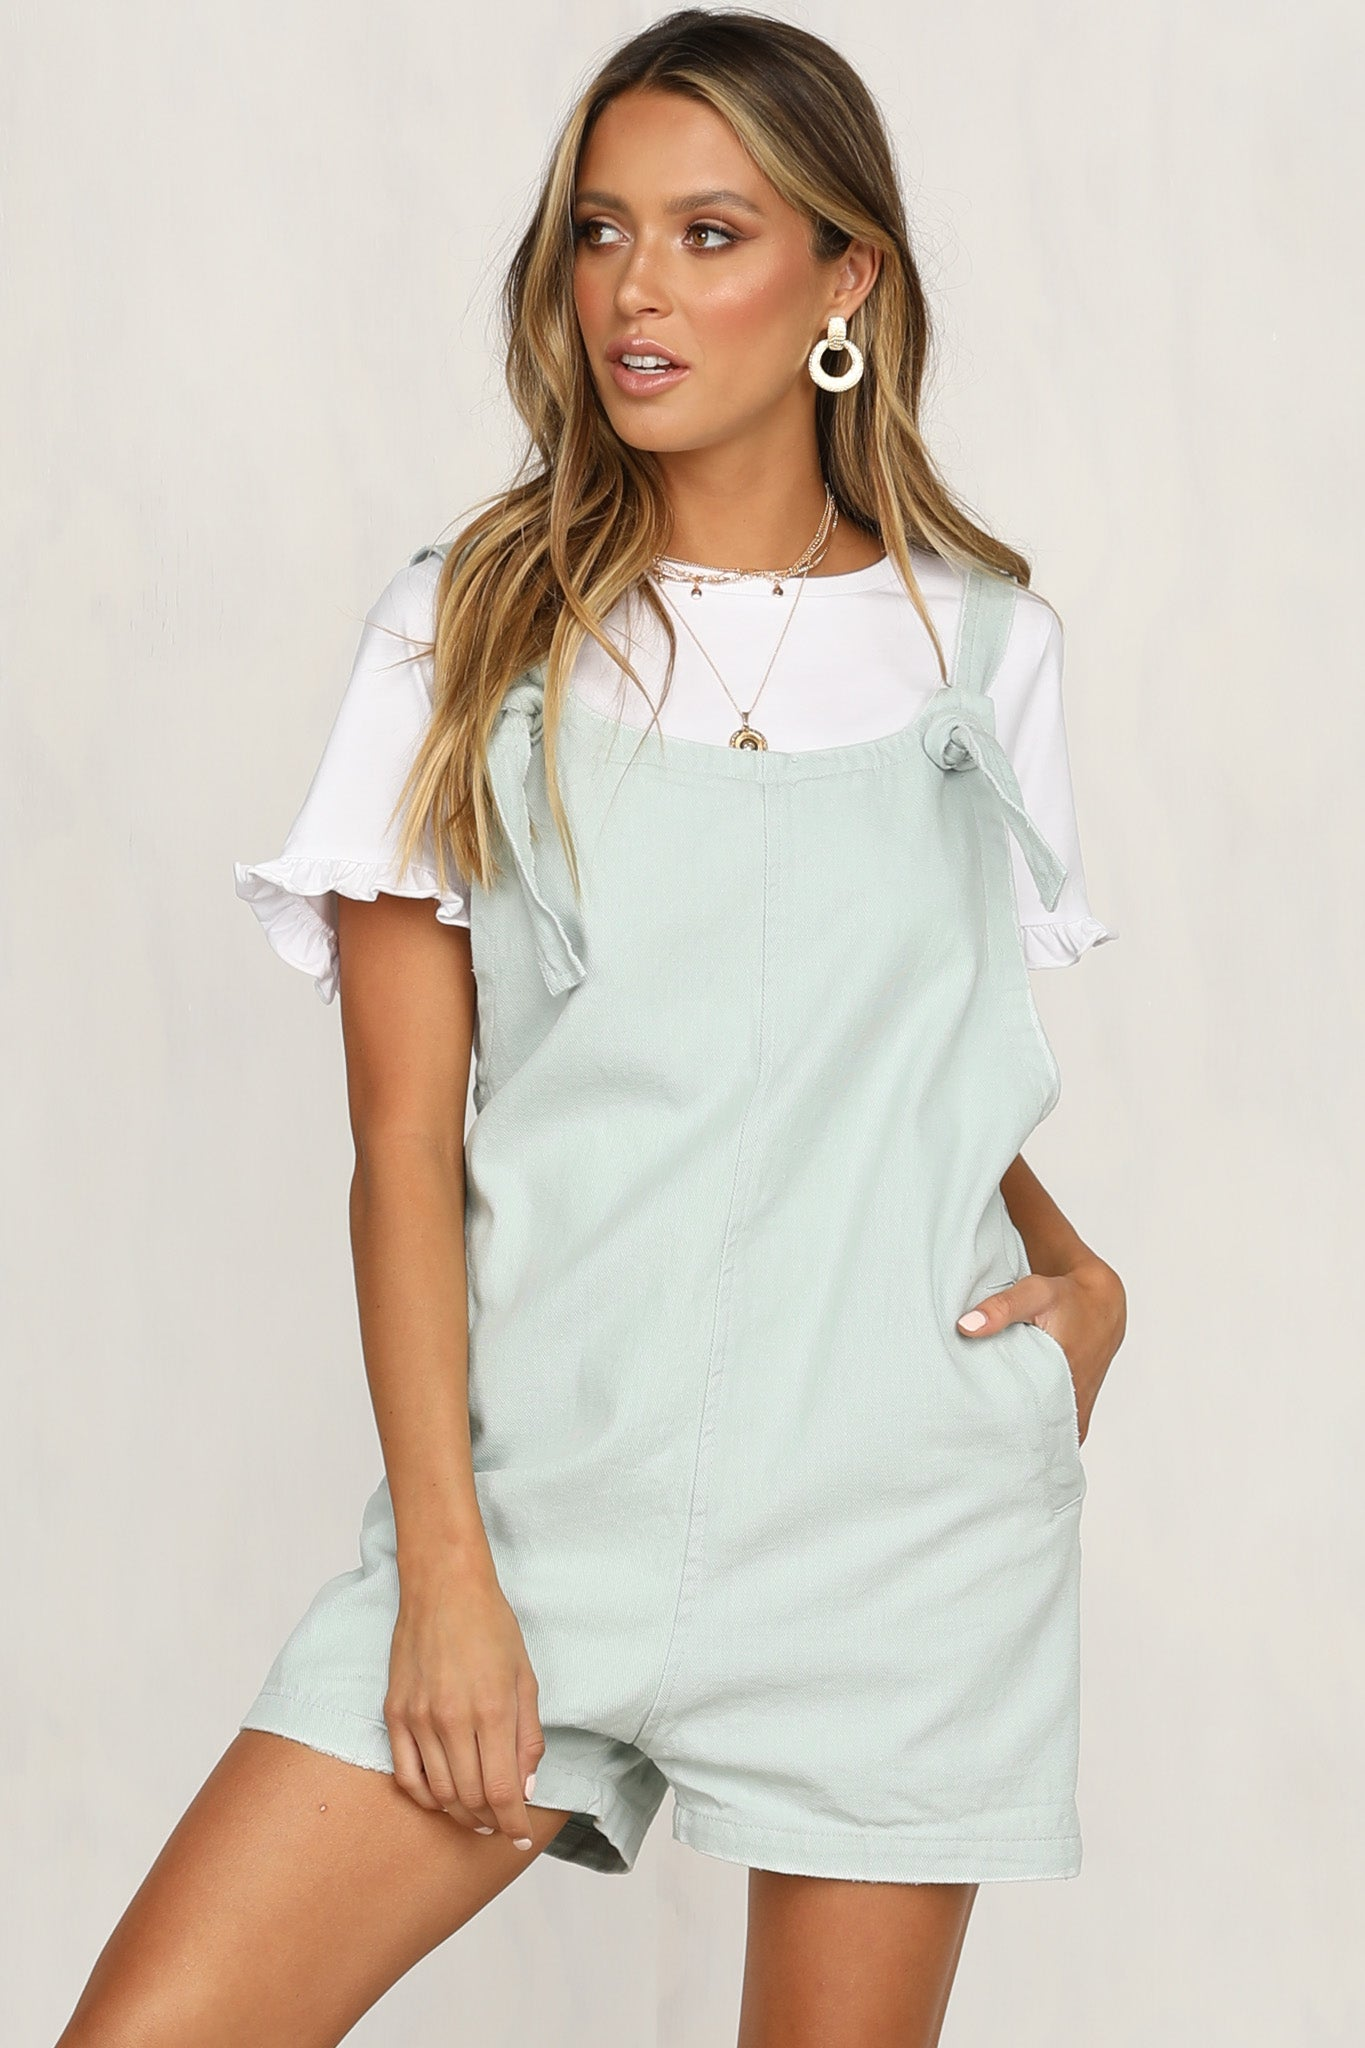 Venus Rising Playsuit (Mint)